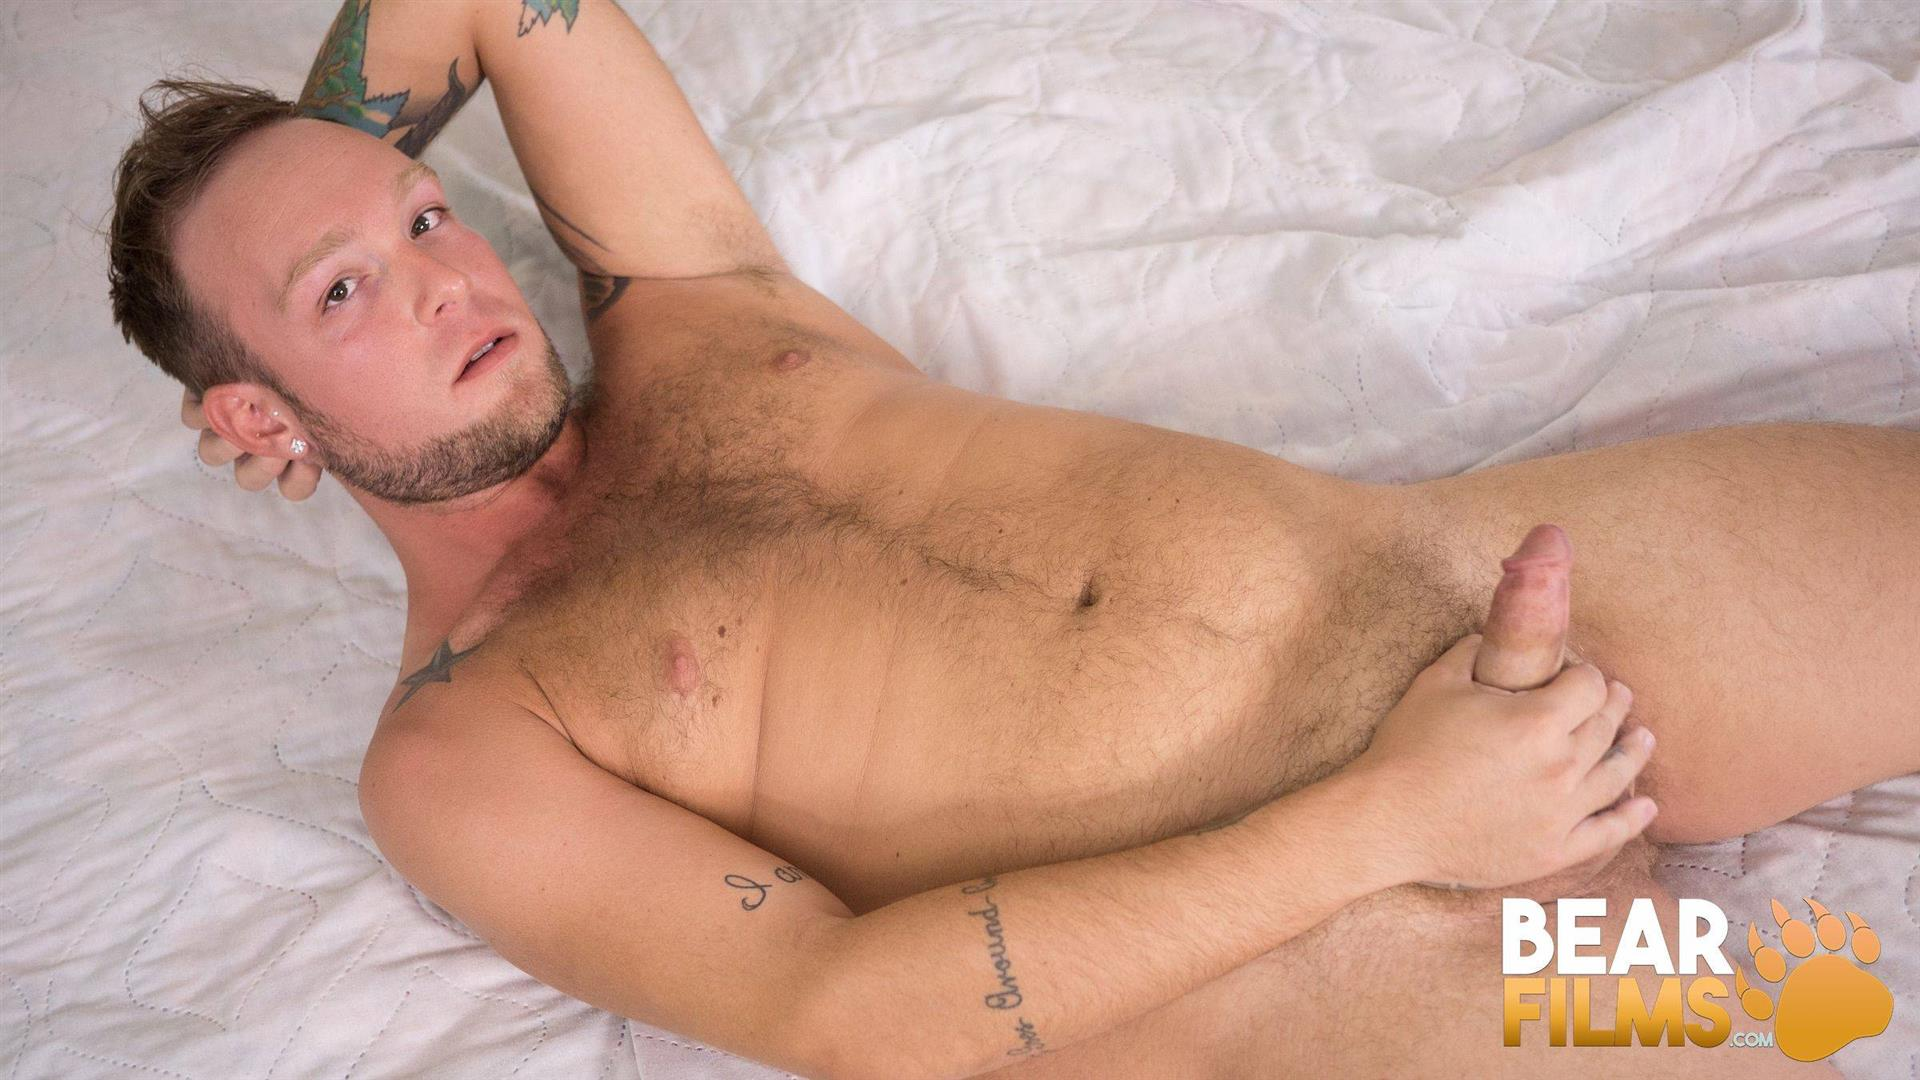 Bear-Films-Sebastian-Sax-Chubby-Bear-Jerking-Off-17 Hairy Chubby Bear Sebastian Sax Joins Bear Films